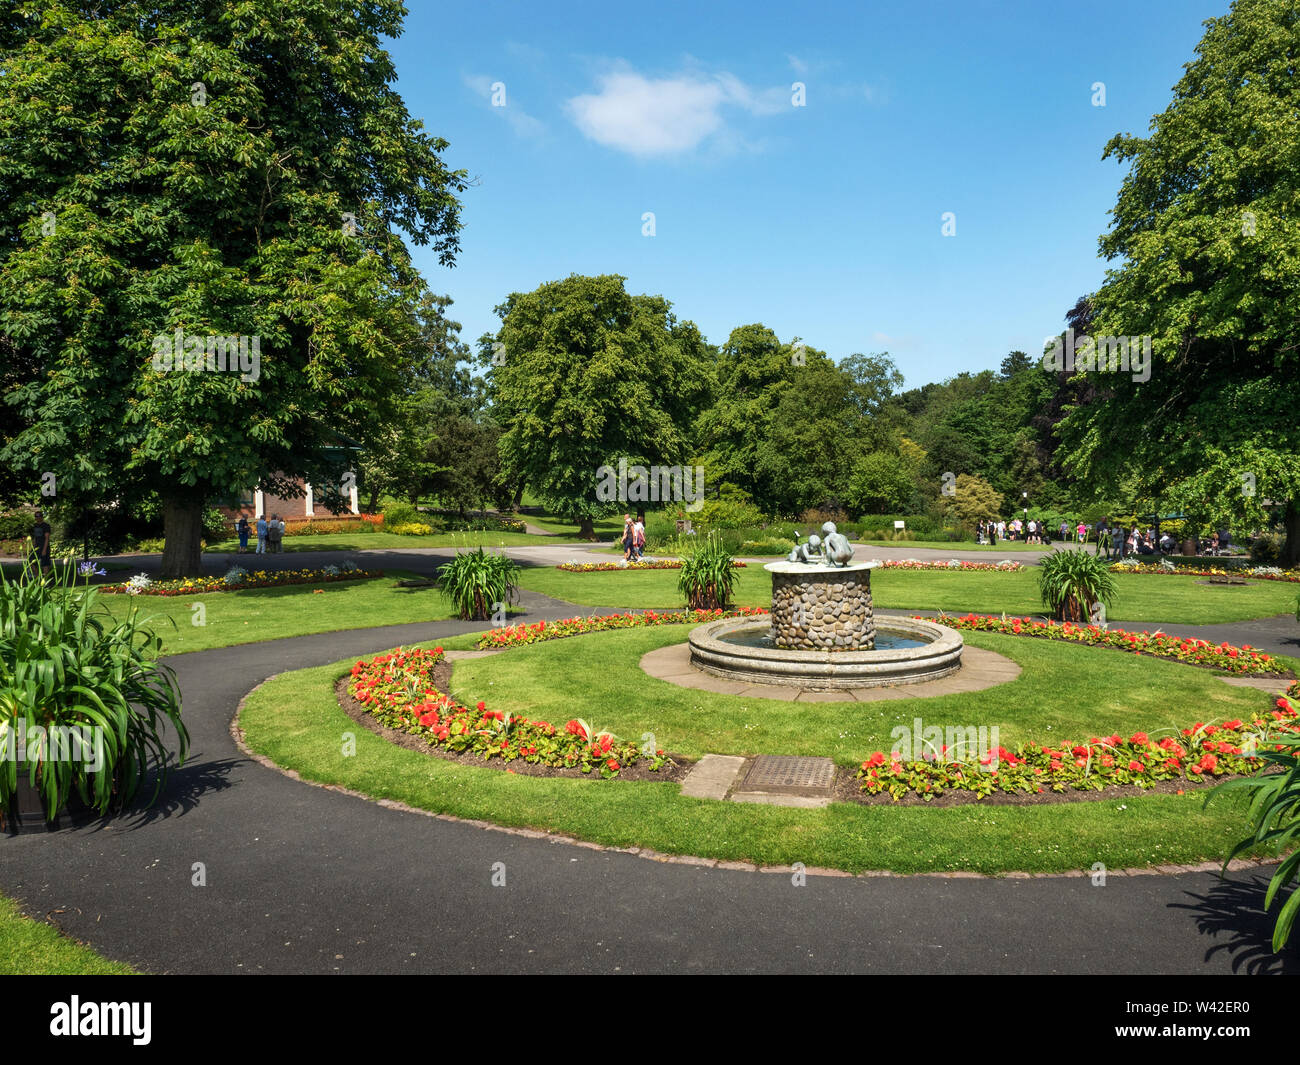 Valley Gardens in summer with the Cherub Fountain as a centrepiece Harrogate North Yorkshire England Stock Photo